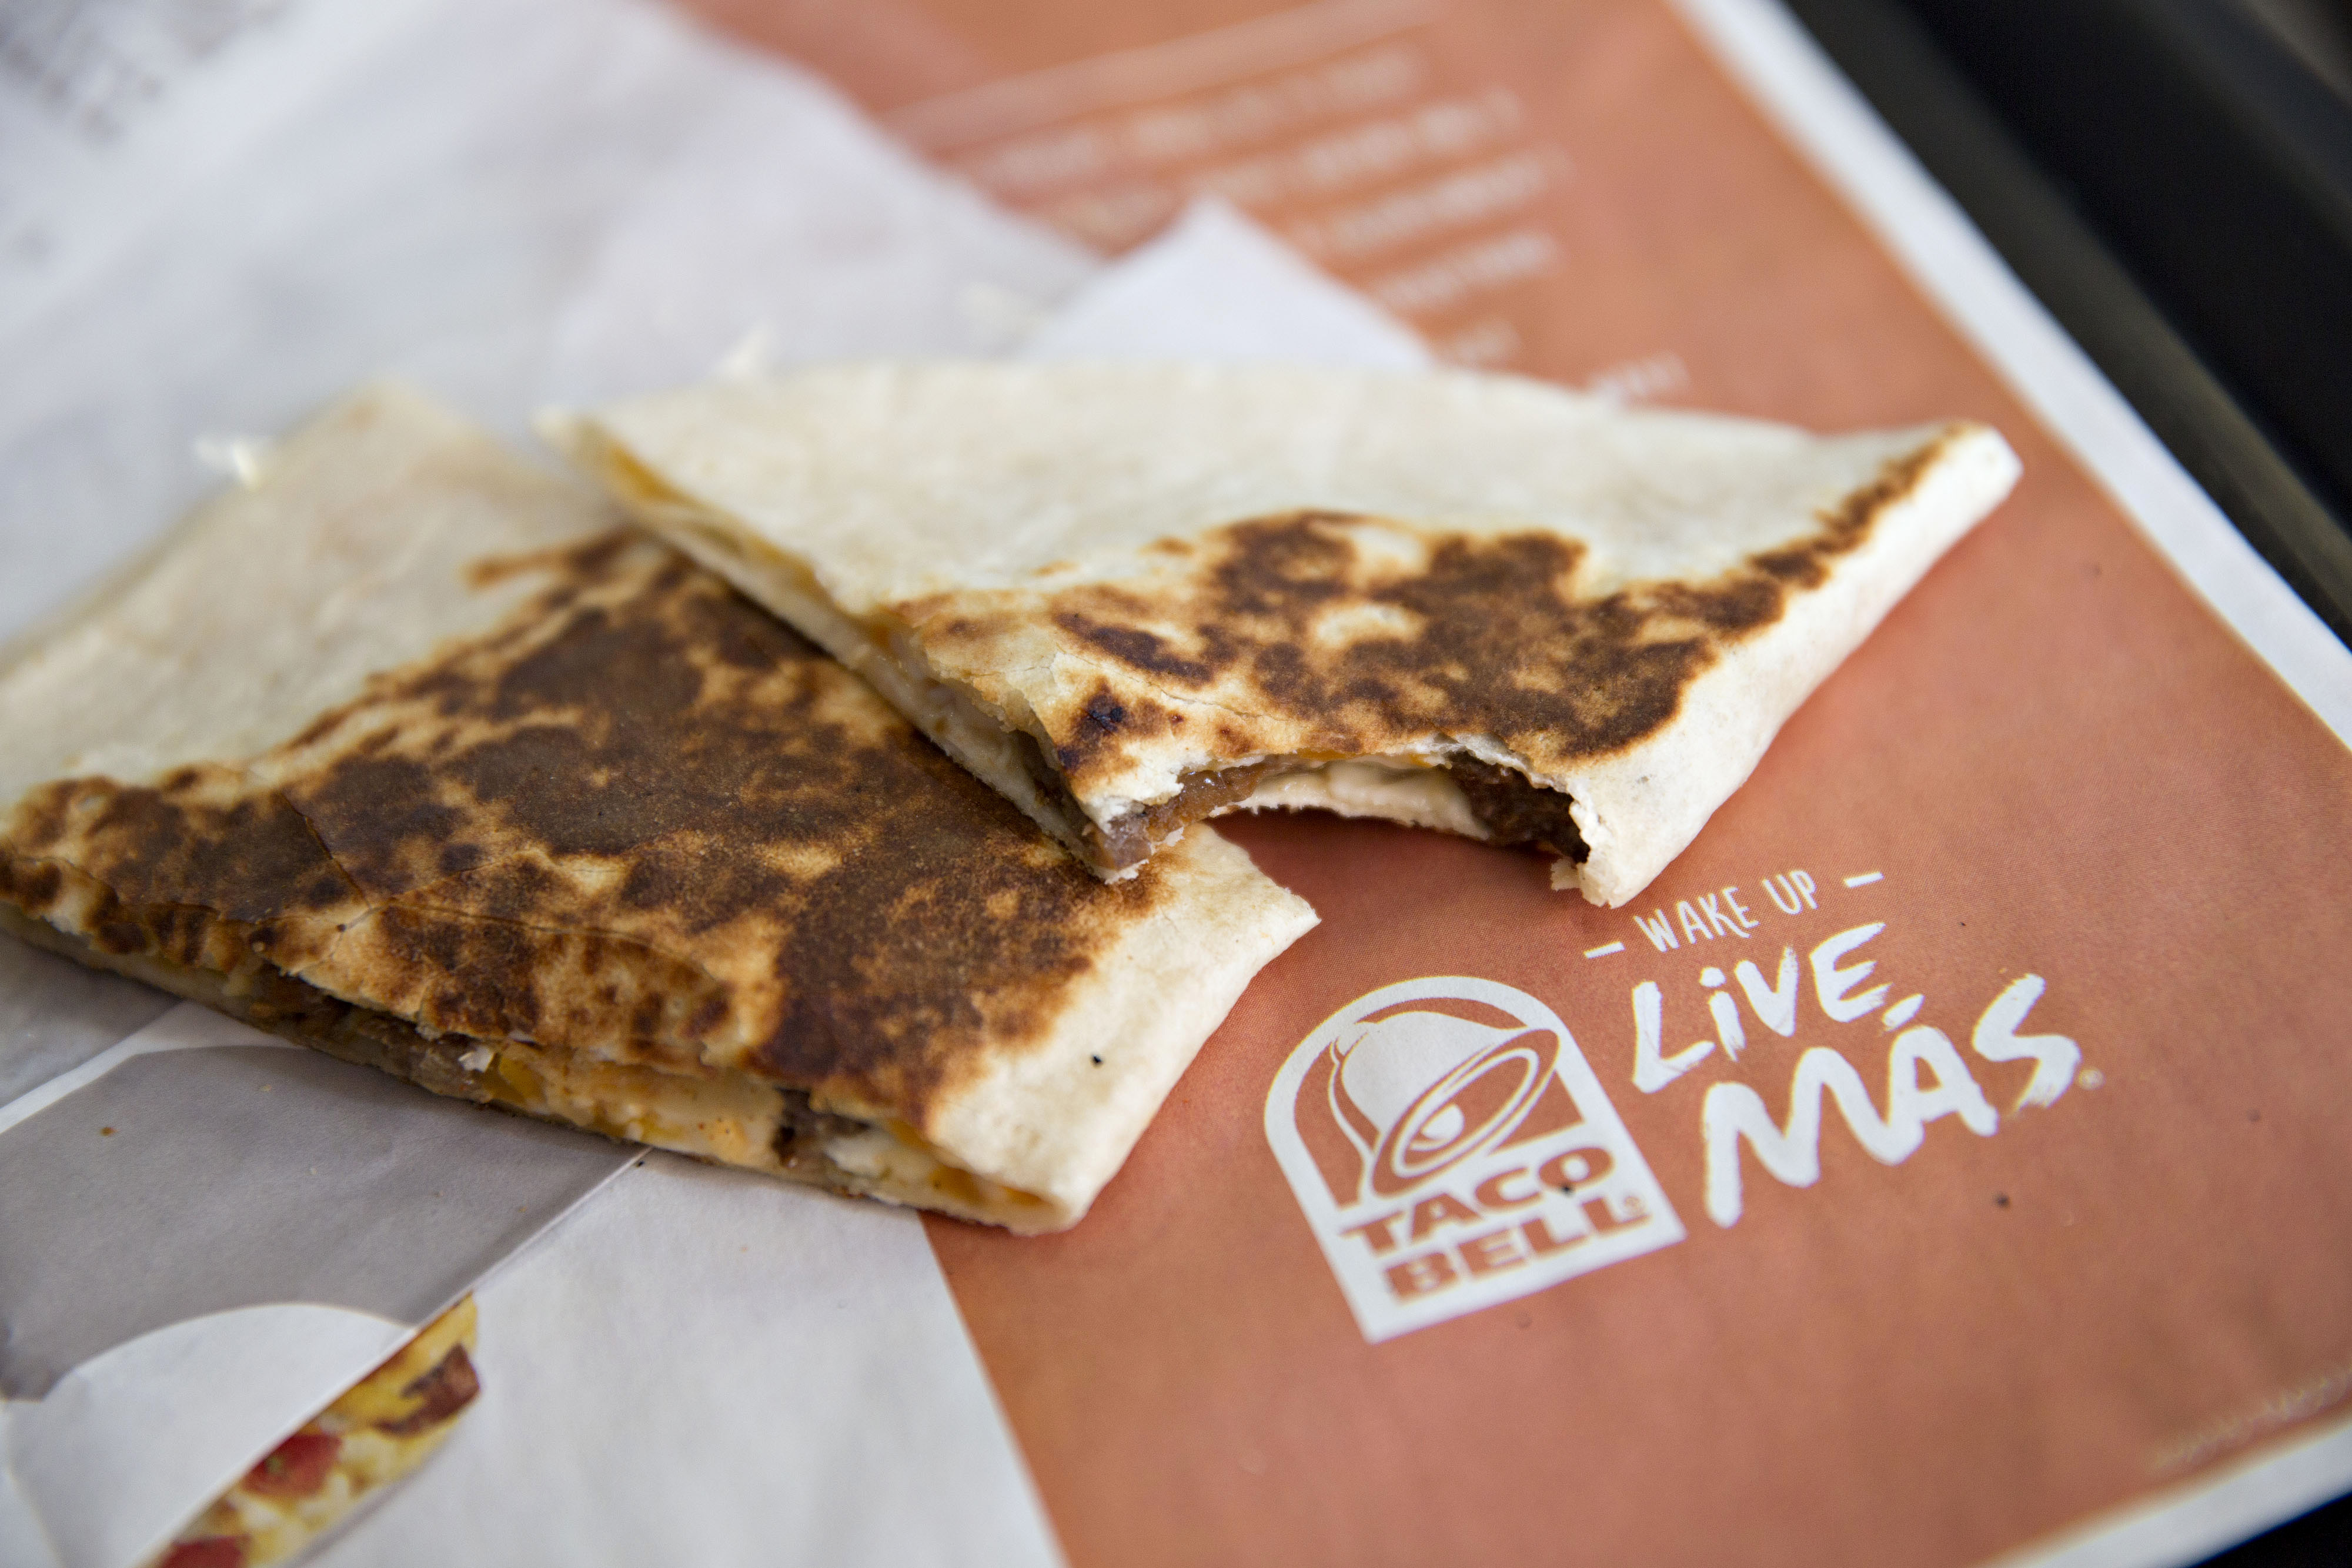 Food is arranged for a photograph at a Taco Bell restaurant in Peru, Illinois, U.S., on Thursday, Oct. 1, 2015. Yum! Brands Inc., owner of restaurant brands KFC, Pizza Hut, and Taco Bell, is scheduled to release third-quarter earnings on October 6.